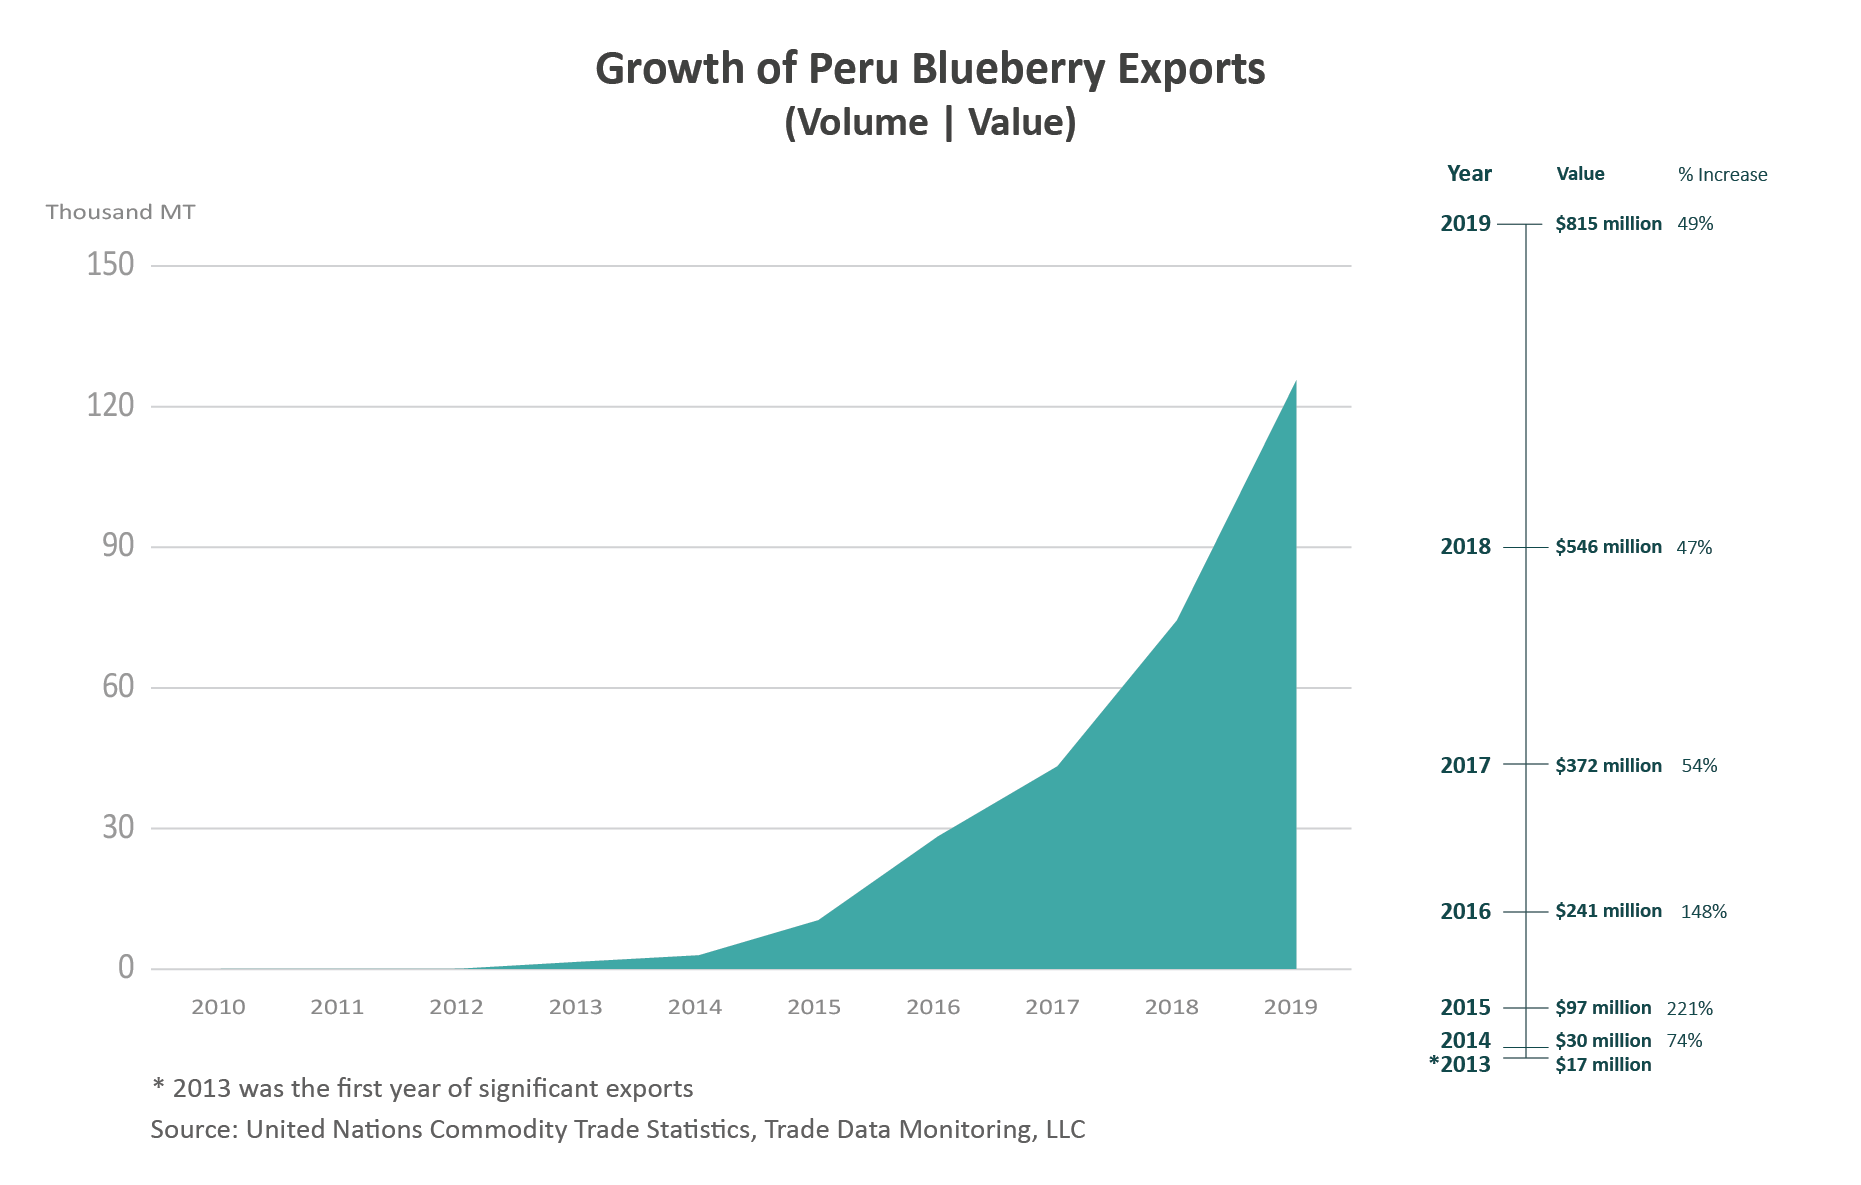 A series of charts showing the increases in volume and value of Peru's blueberry exports - particularly since 2012